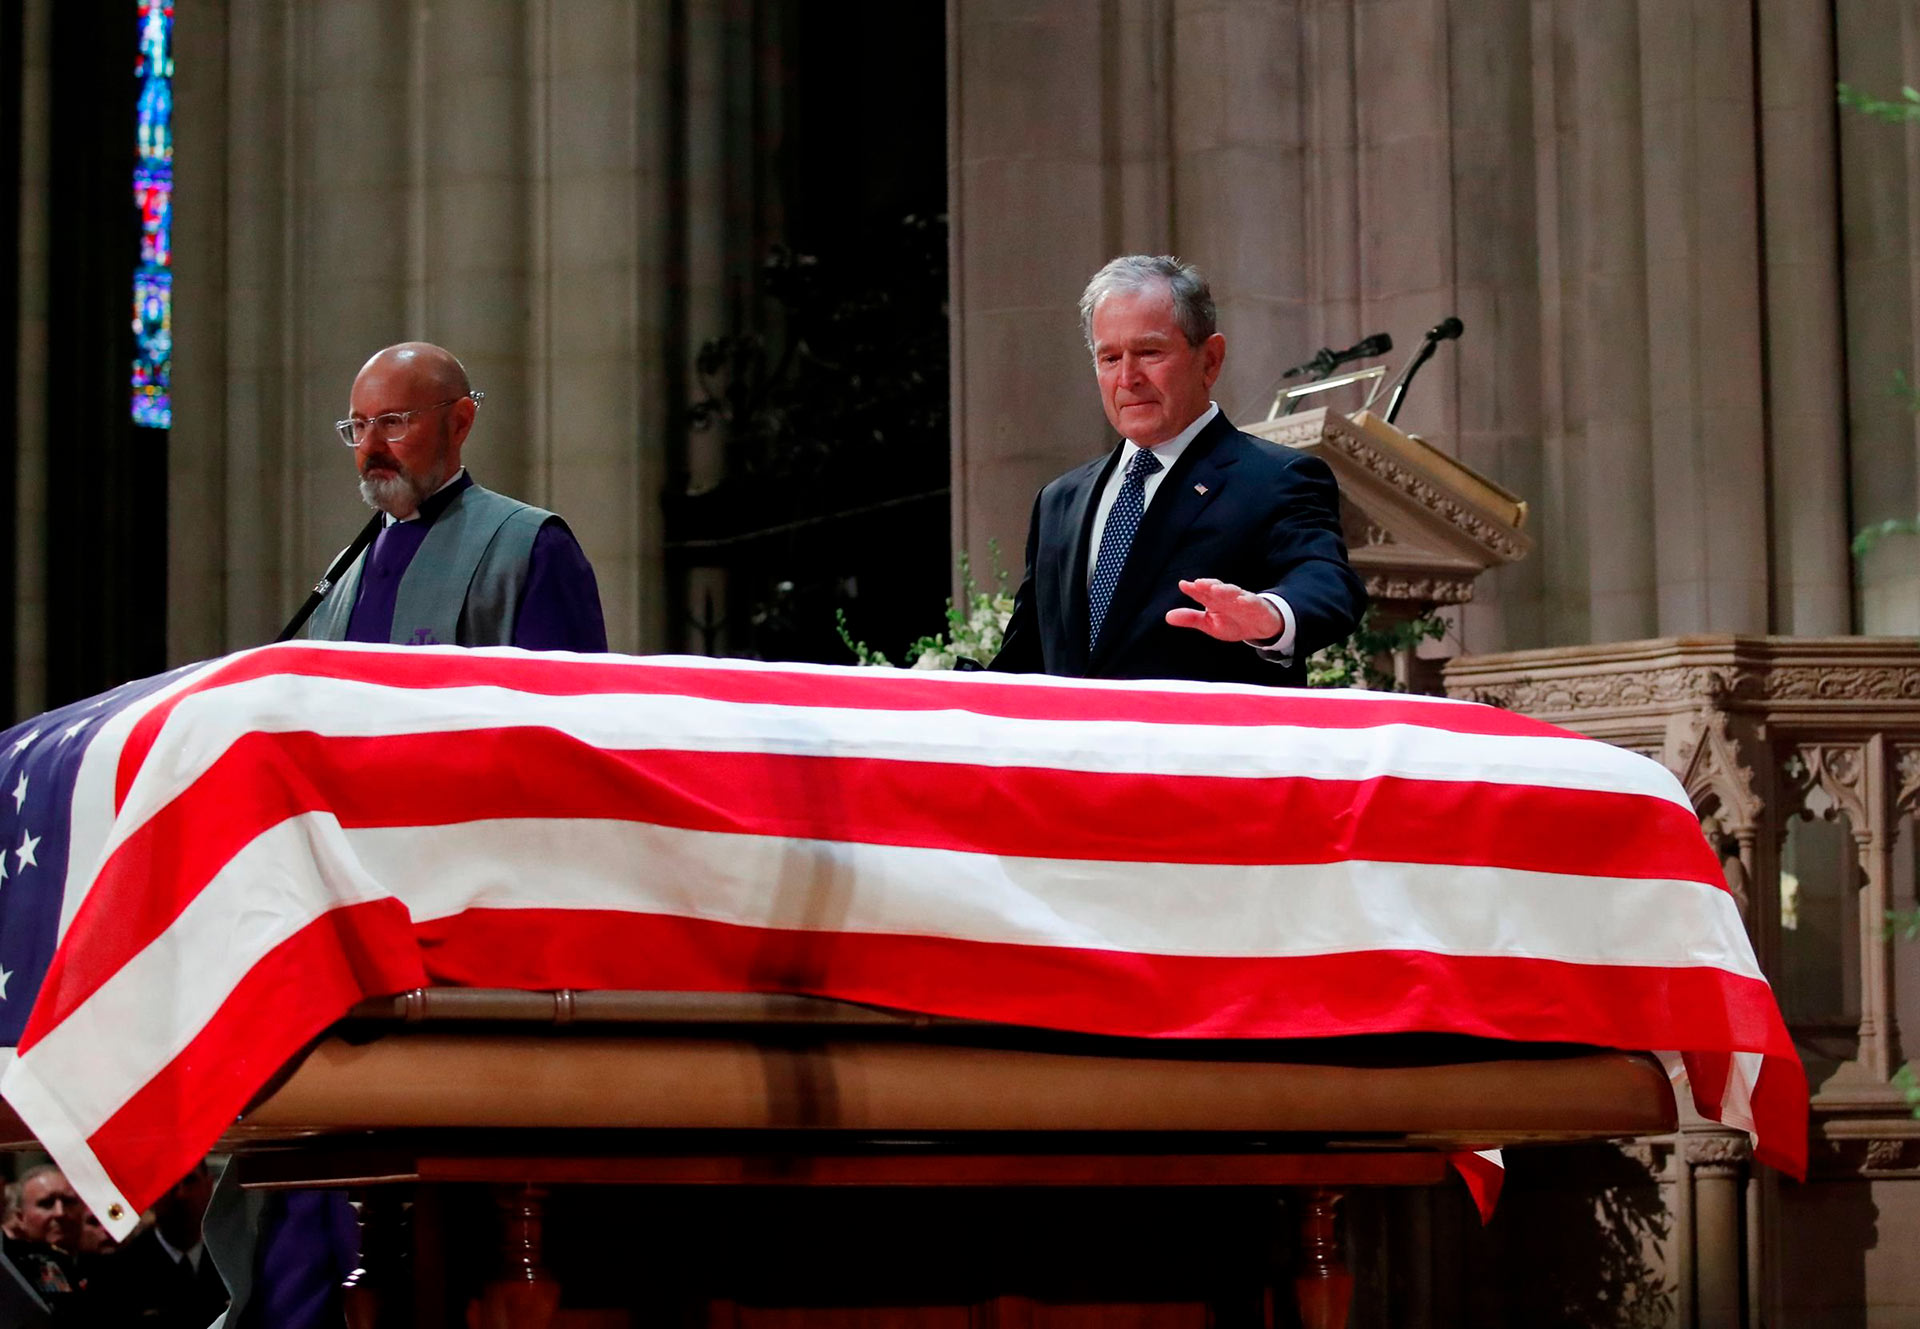 Former President George W. Bush touches the coffin after speaking at the funeral for his father